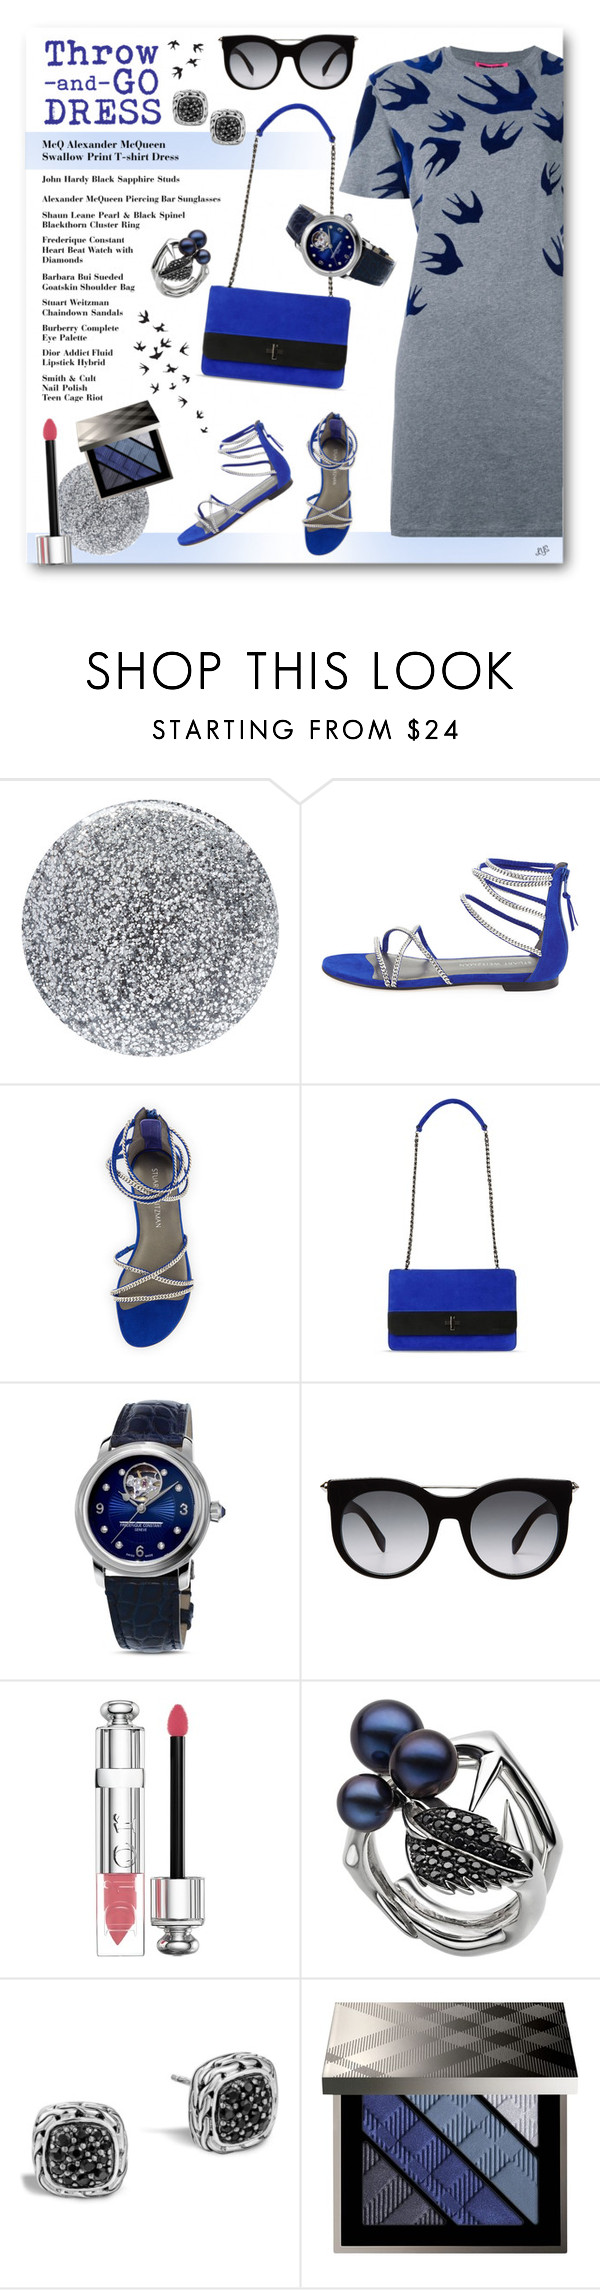 """""""Untitled #1093"""" by louise-stuart ❤ liked on Polyvore featuring Smith & Cult, Stuart Weitzman, Barbara Bui, Frédérique Constant, Alexander McQueen, Christian Dior, John Hardy, Burberry and McQ by Alexander McQueen"""